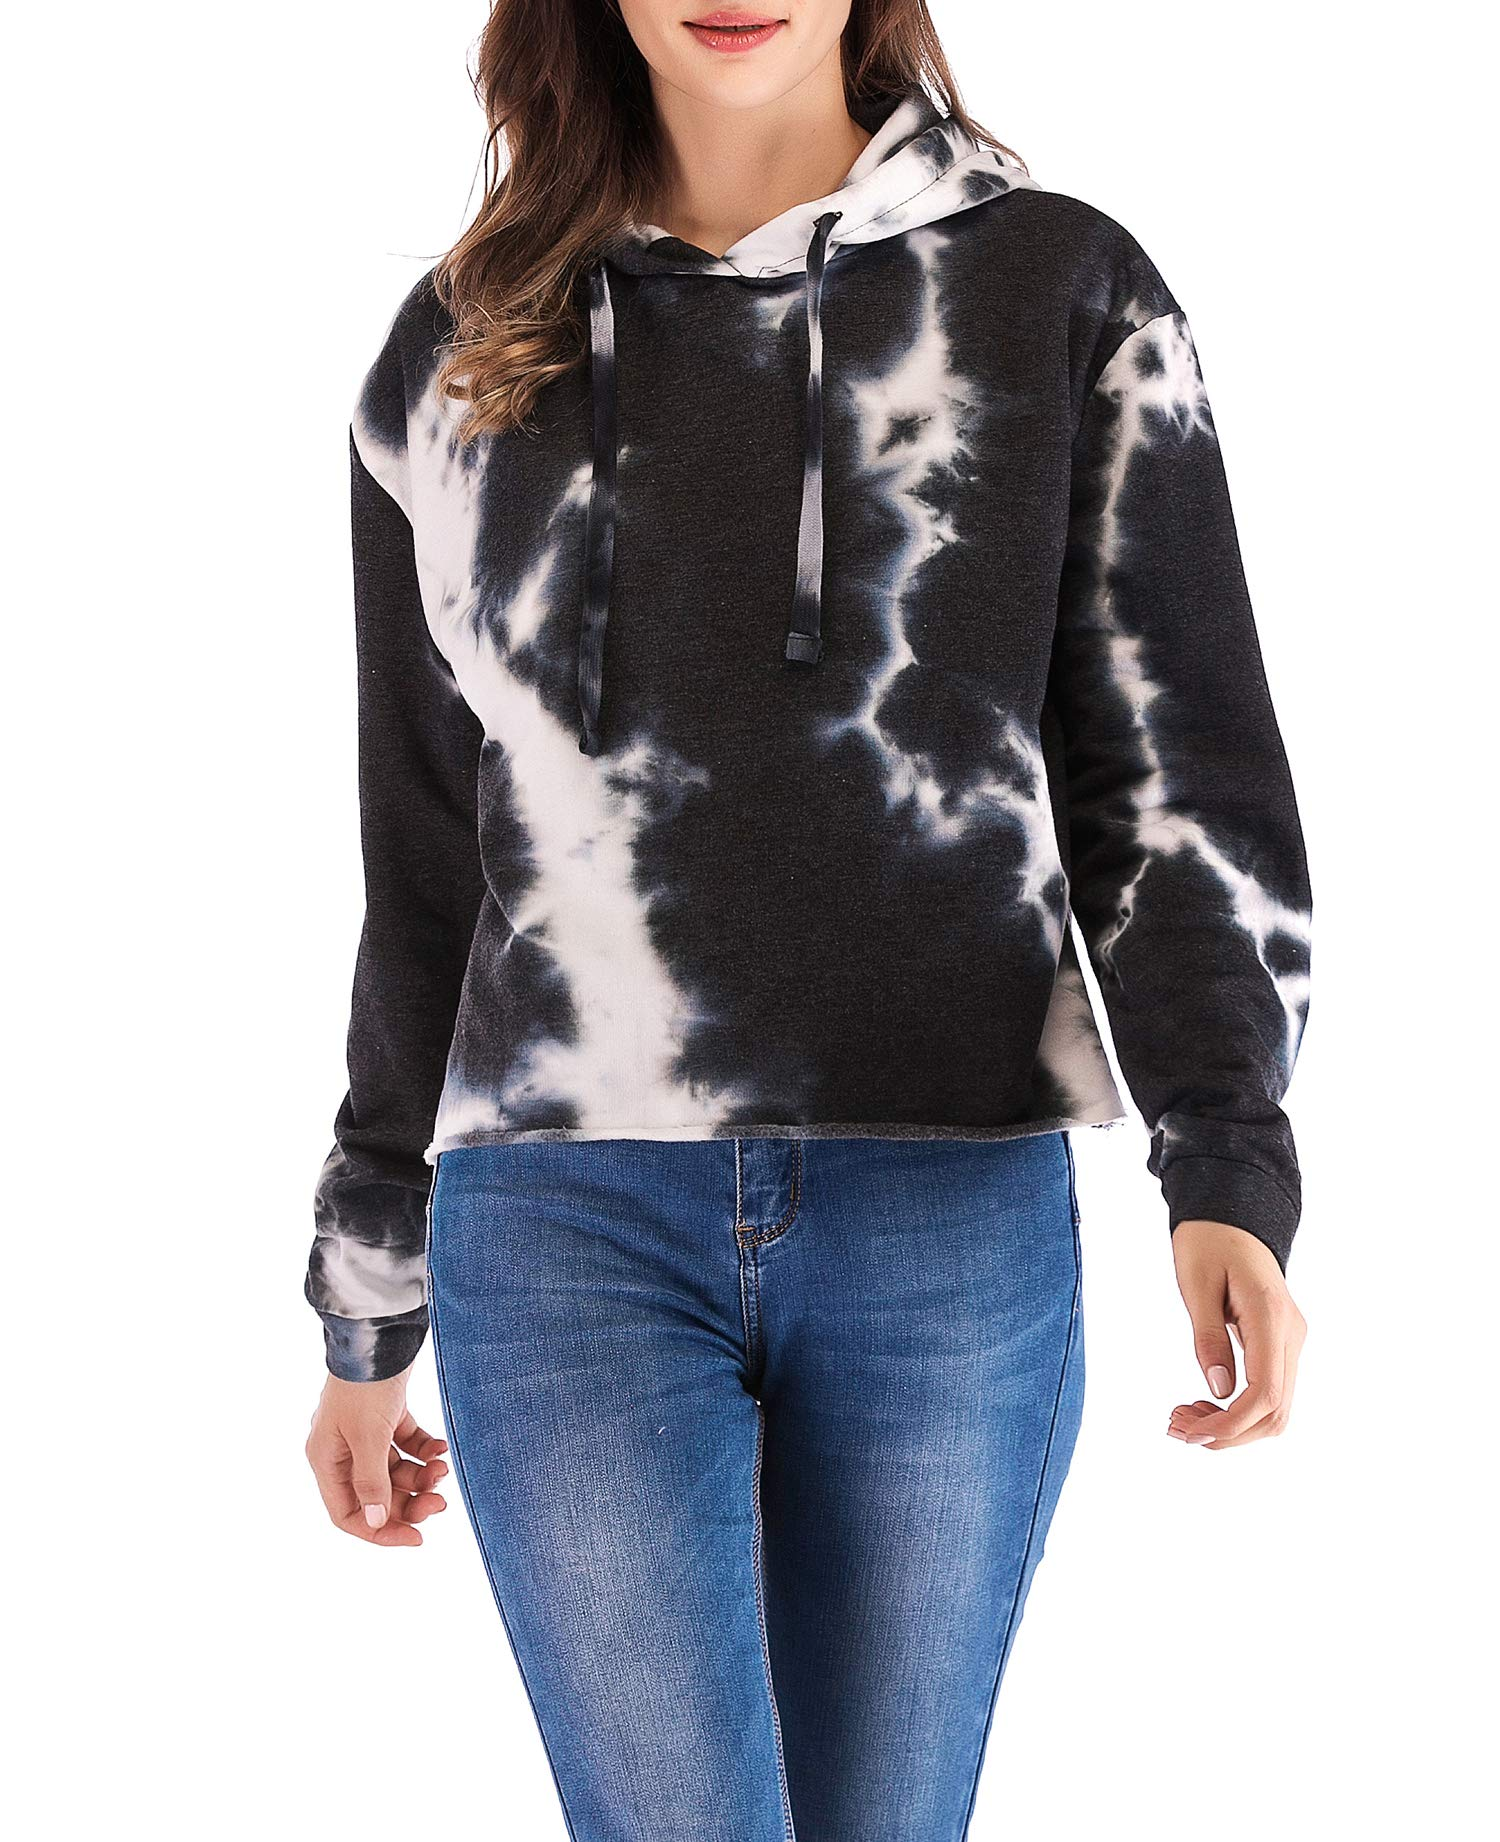 Eanklosco Womens Casual Long Sleeve Tie Dye Hoody (Black, L)